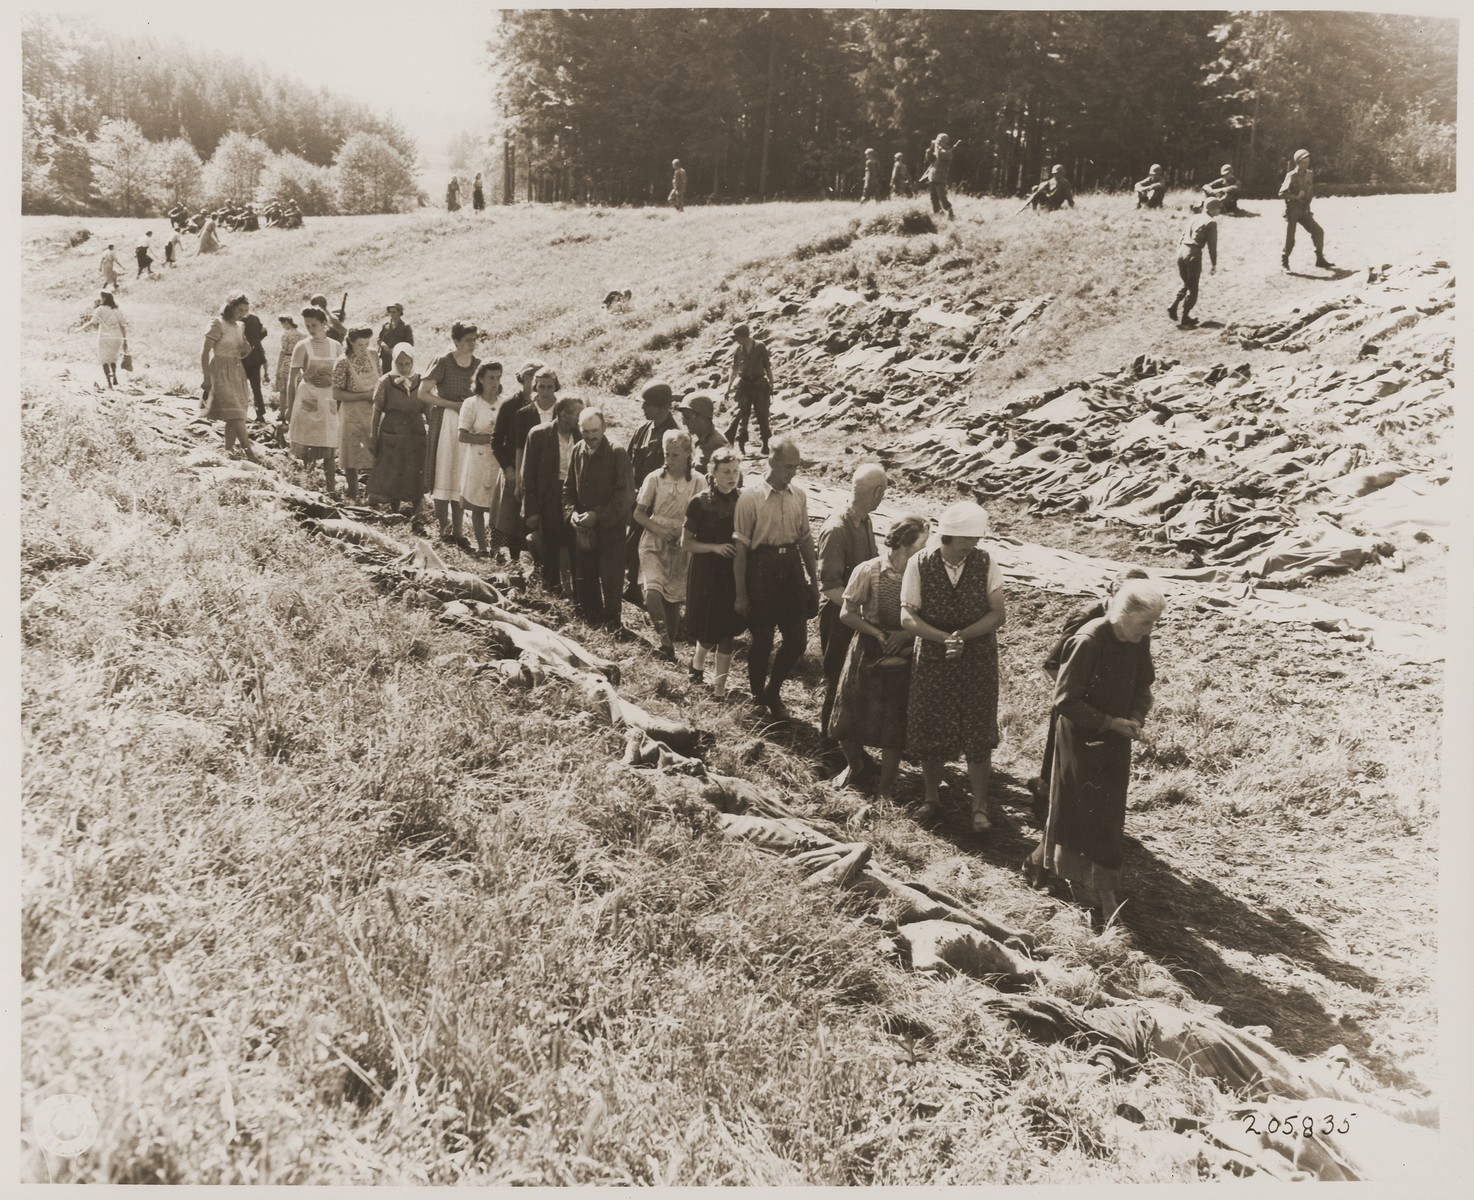 Under the supervision of American soldiers, German civilians from Nammering walk among the corpses of prisoners exhumed from a mass grave near the town.